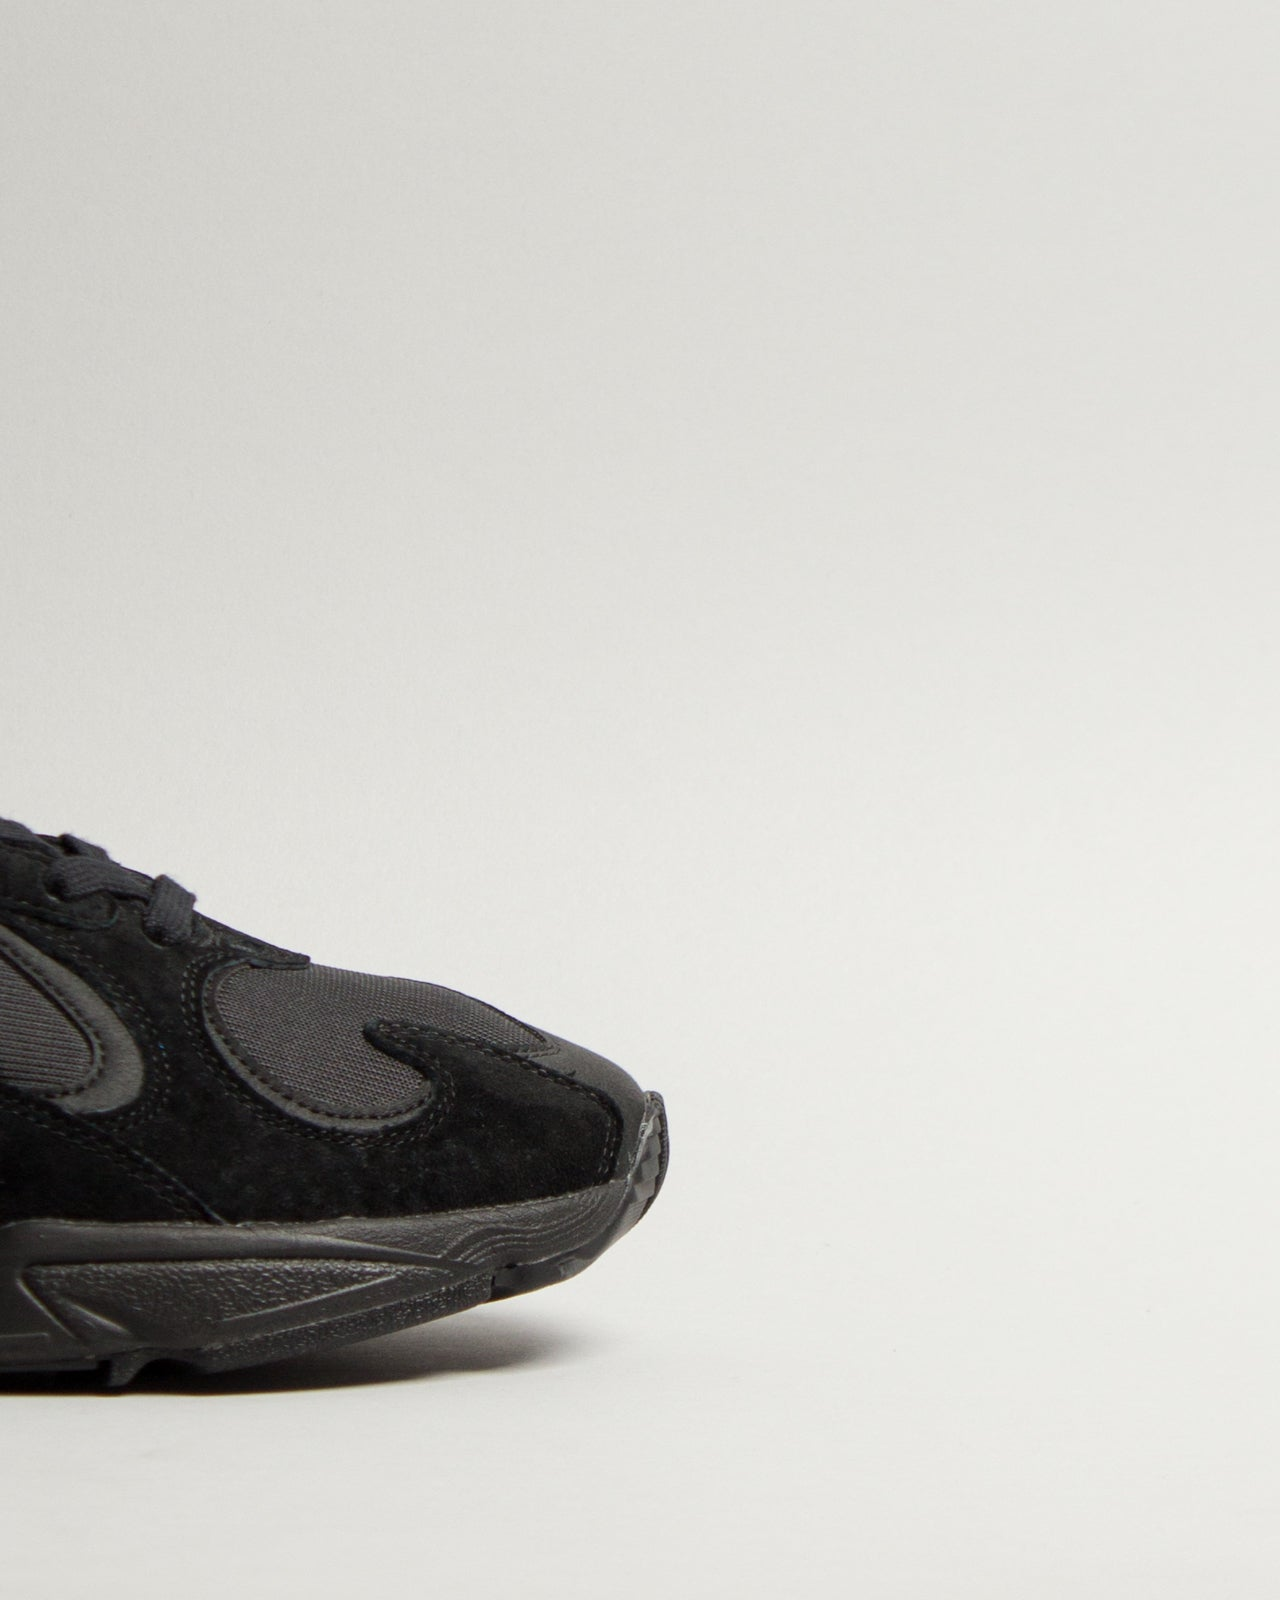 Yung-1 Core Black/Core Black/Carbon